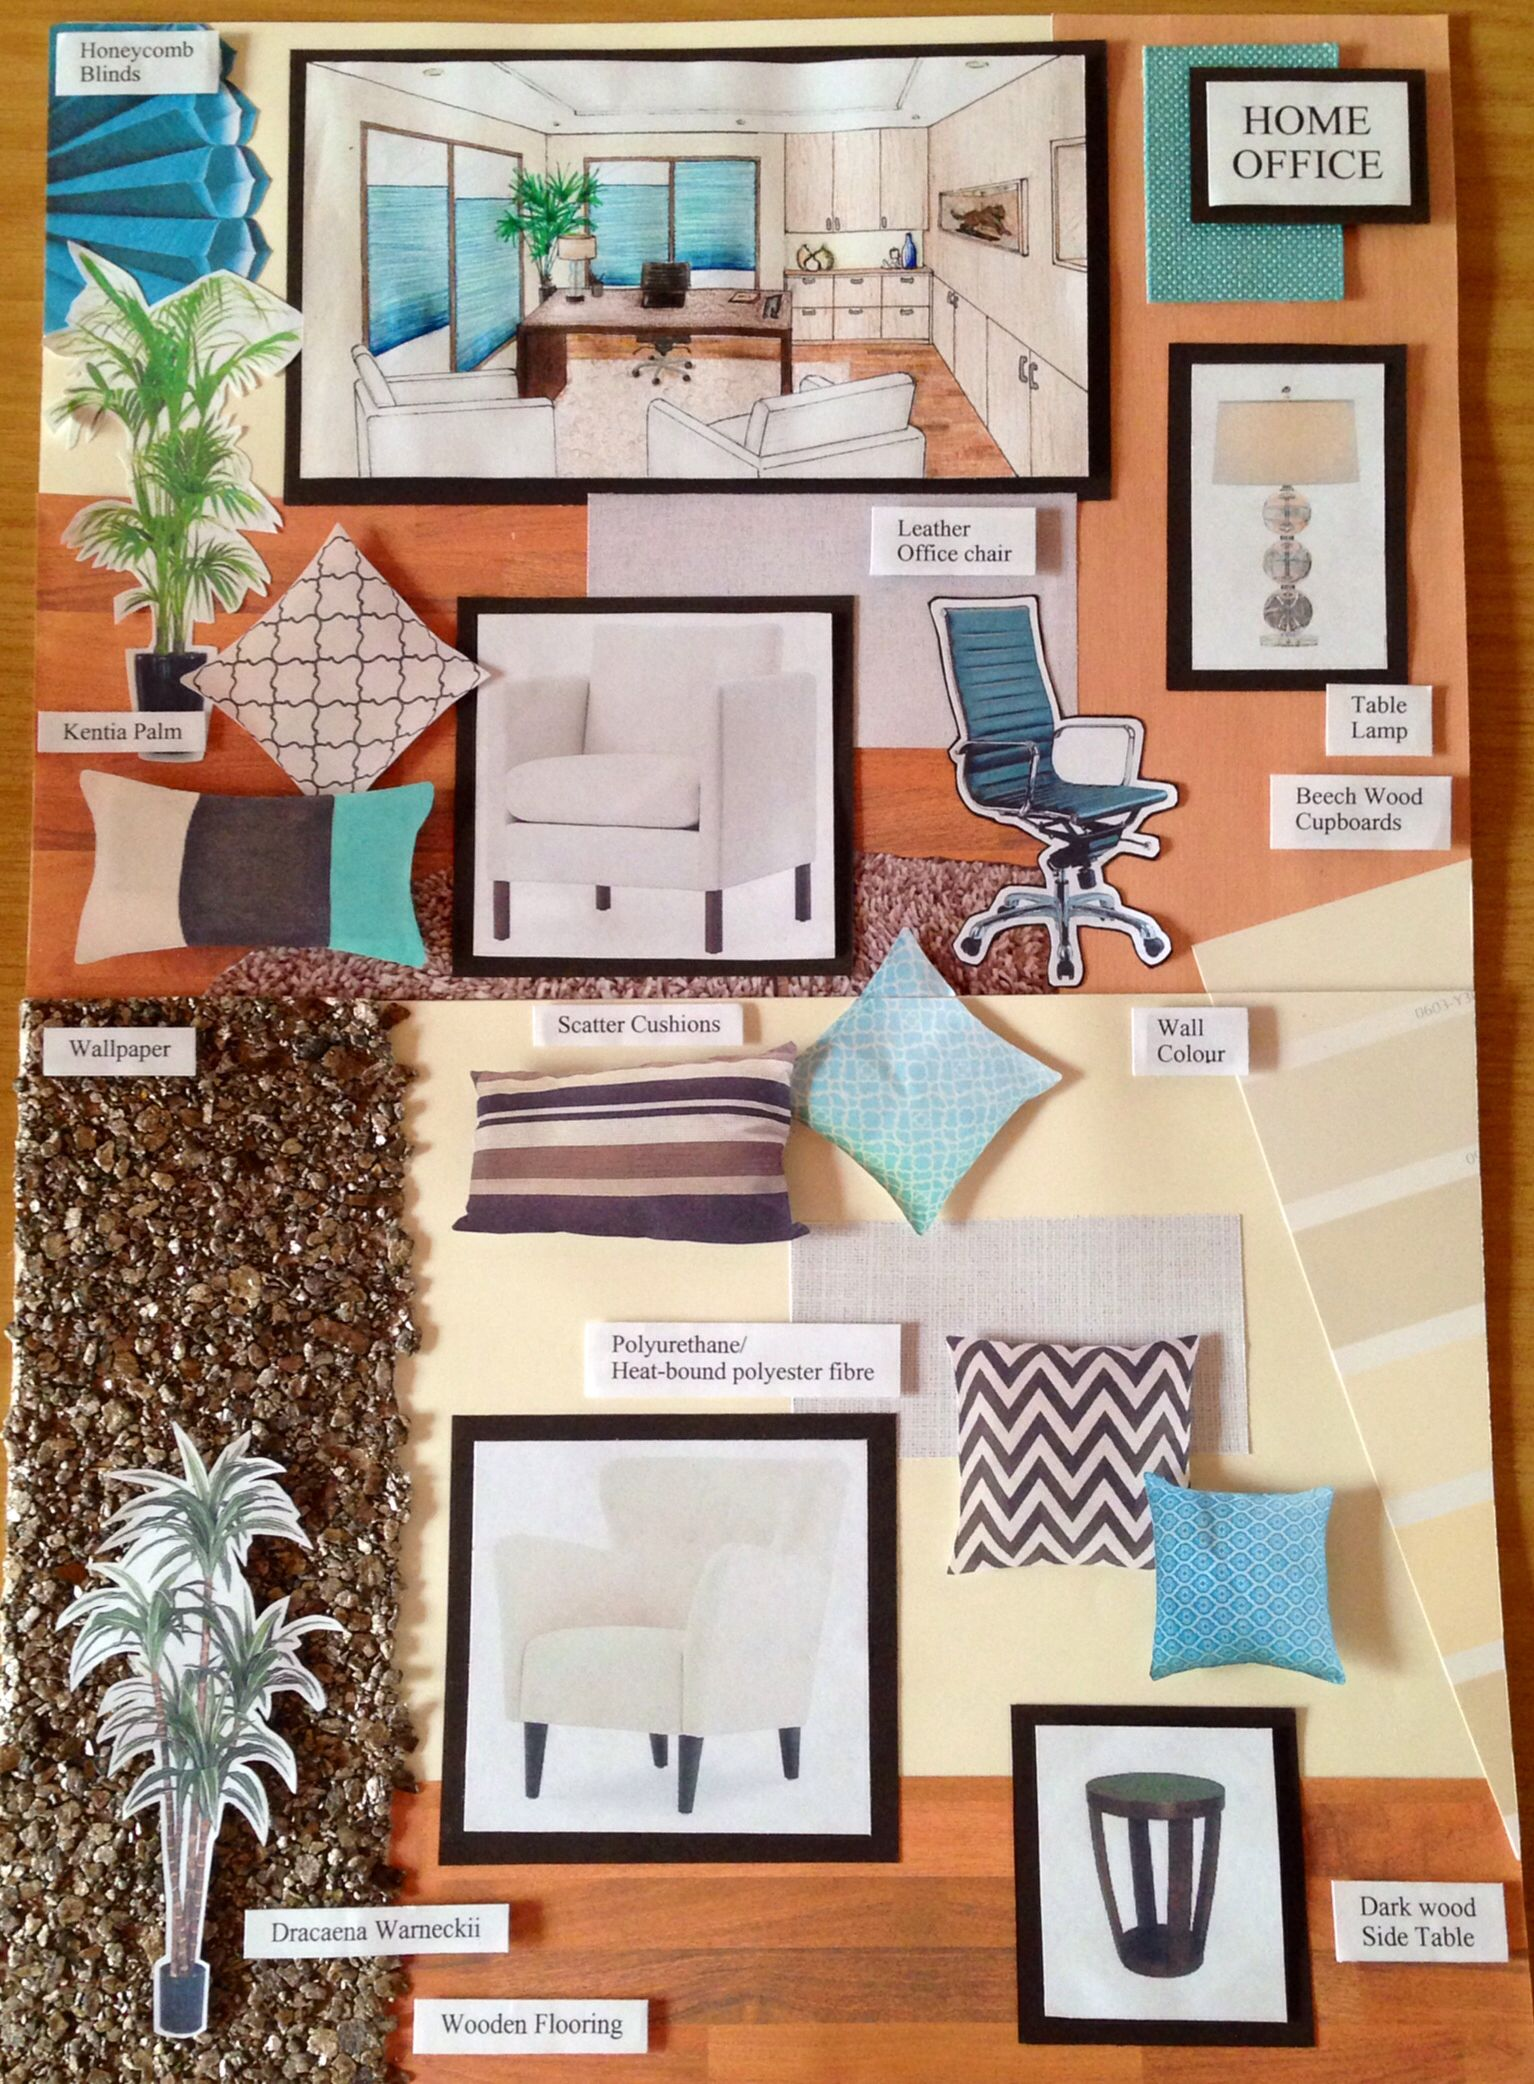 Home office sample board. Turquoise and cream | Interior ...